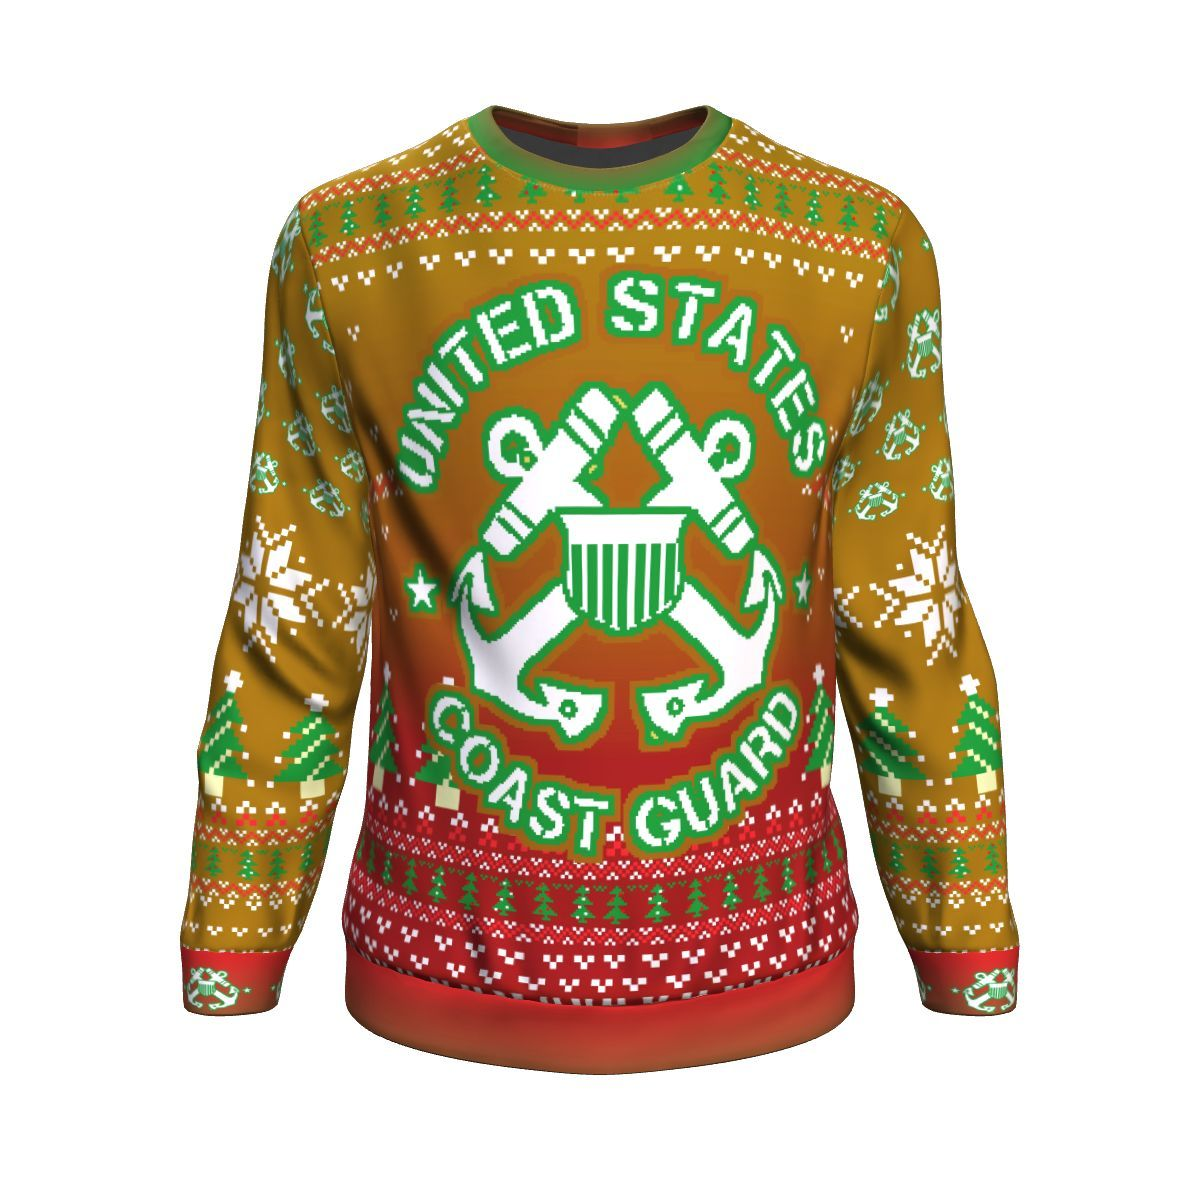 united states coast guard bright all over printed ugly christmas sweater 2